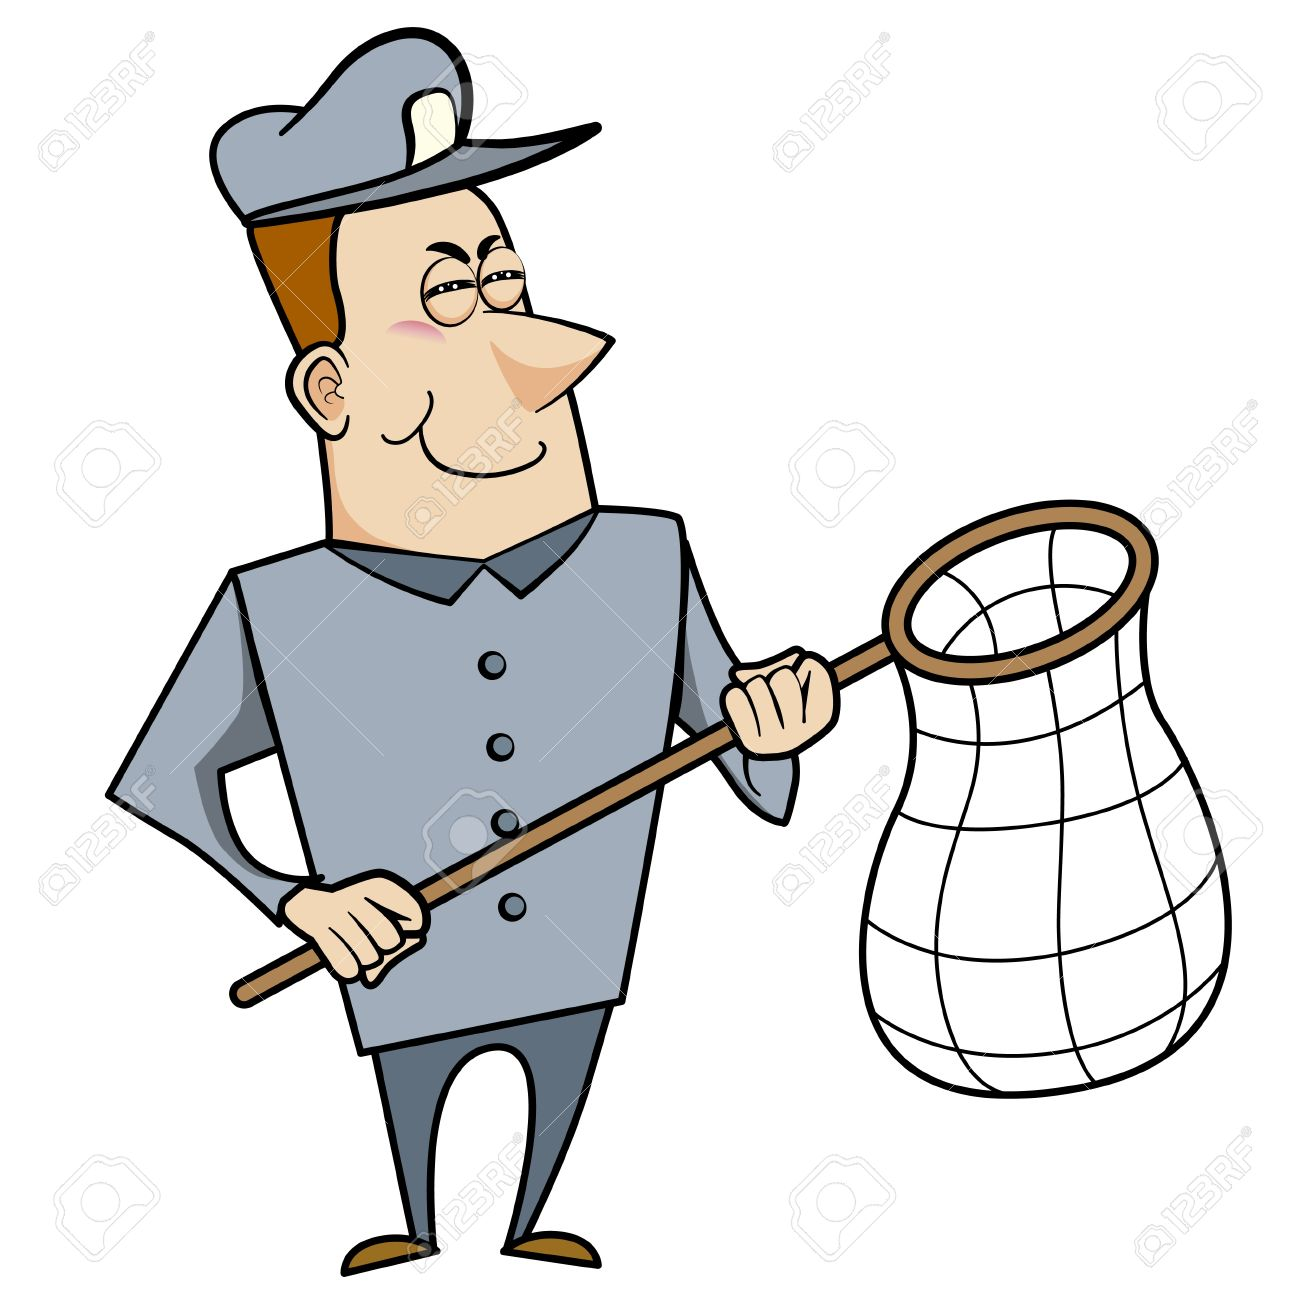 Cartoon animal control officer holding a net for catching animals Stock Vector - 18404650